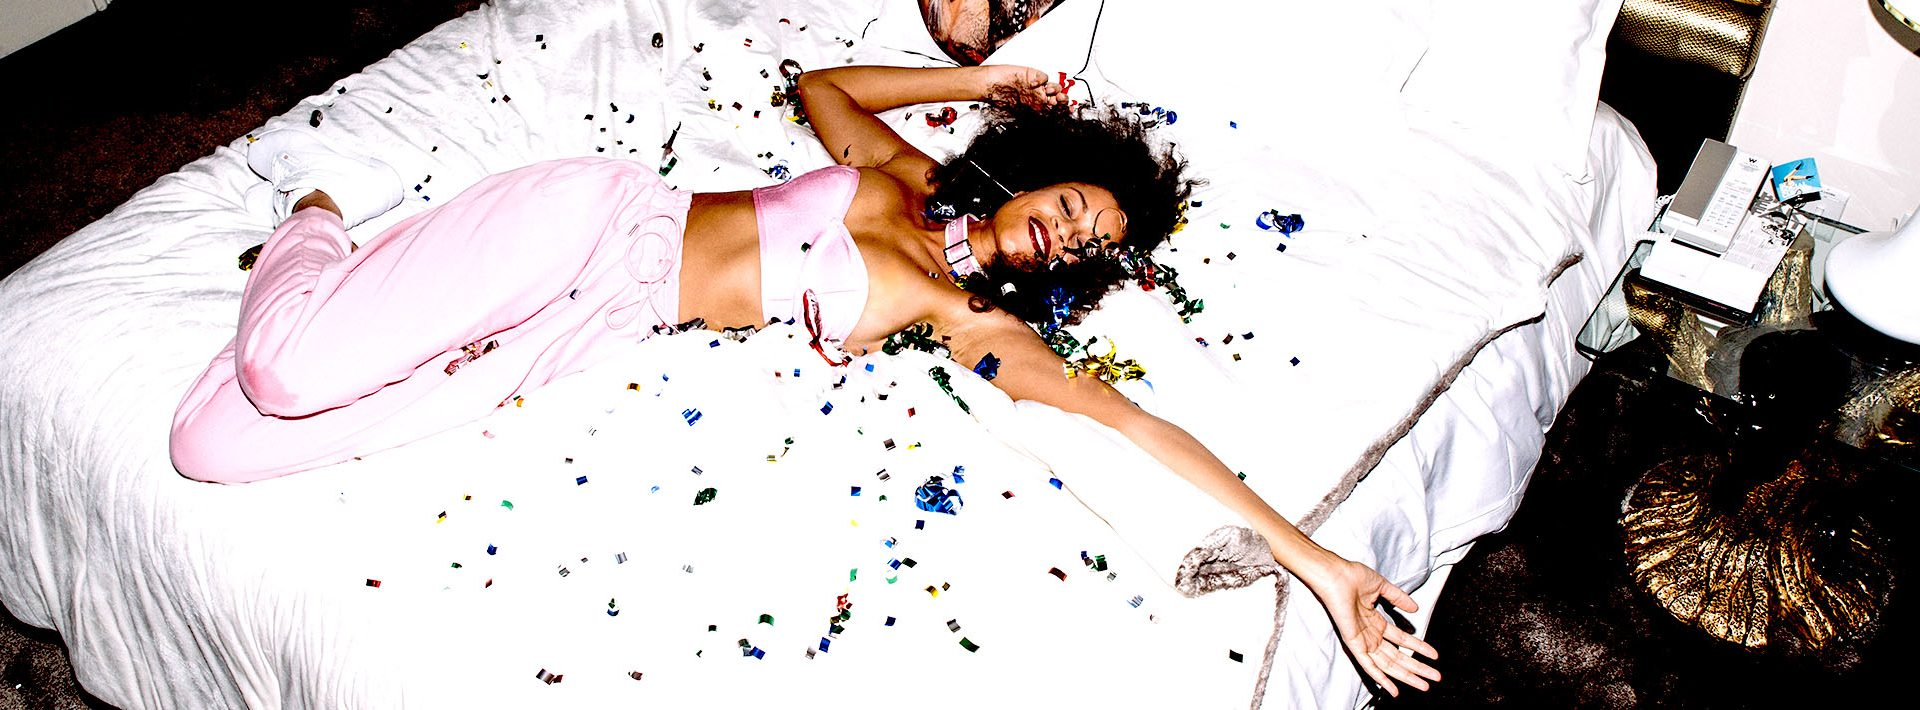 Whotels_AlunaGeorge_header